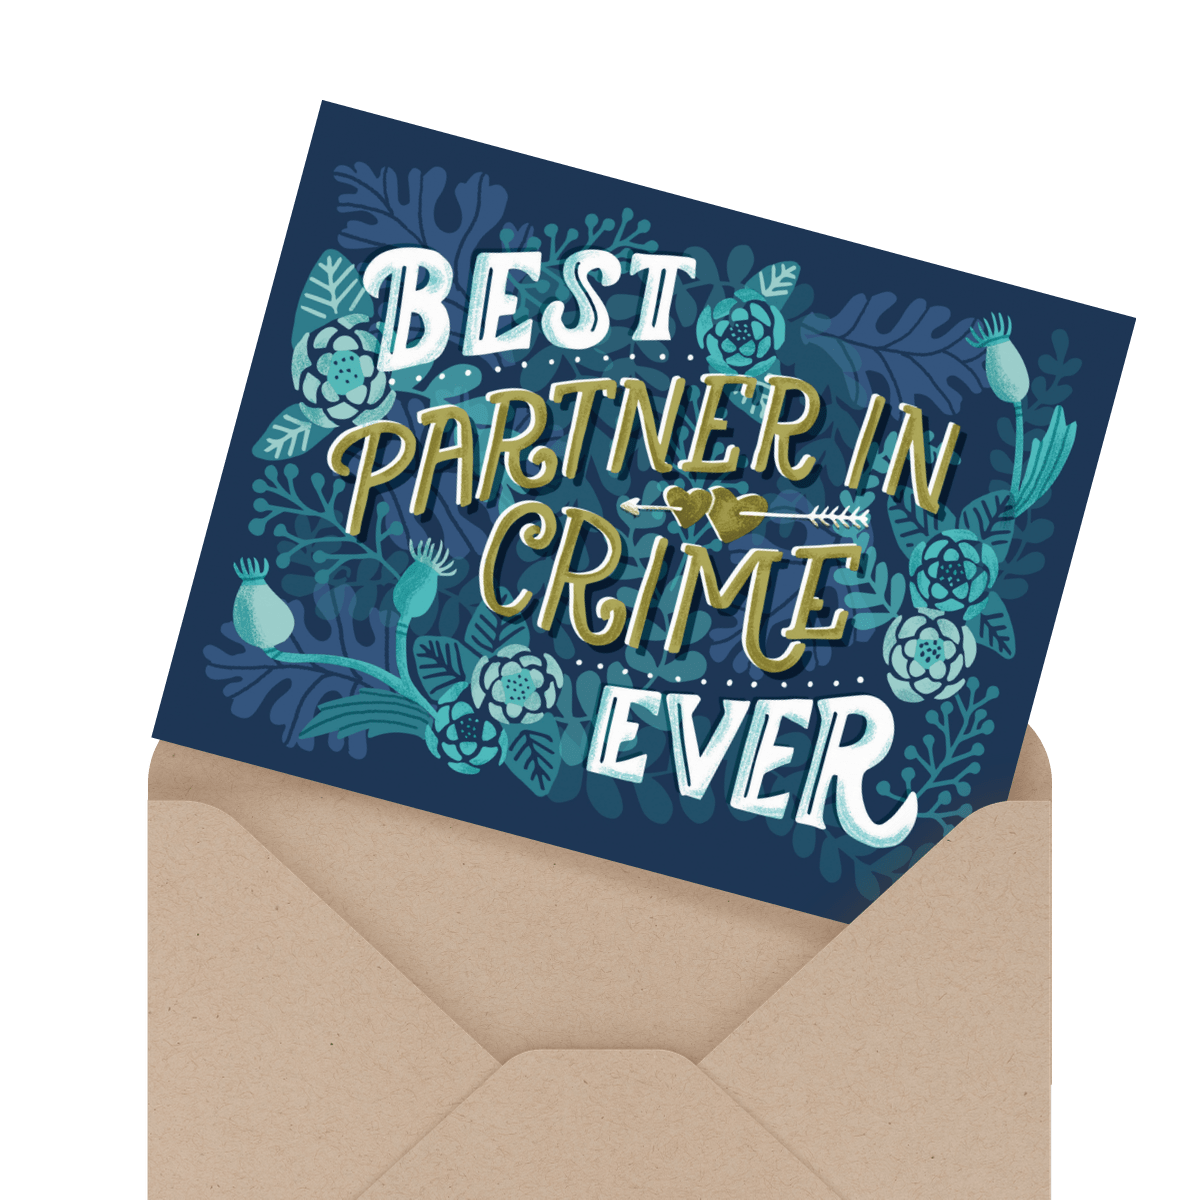 lovely painted you're a keeper card